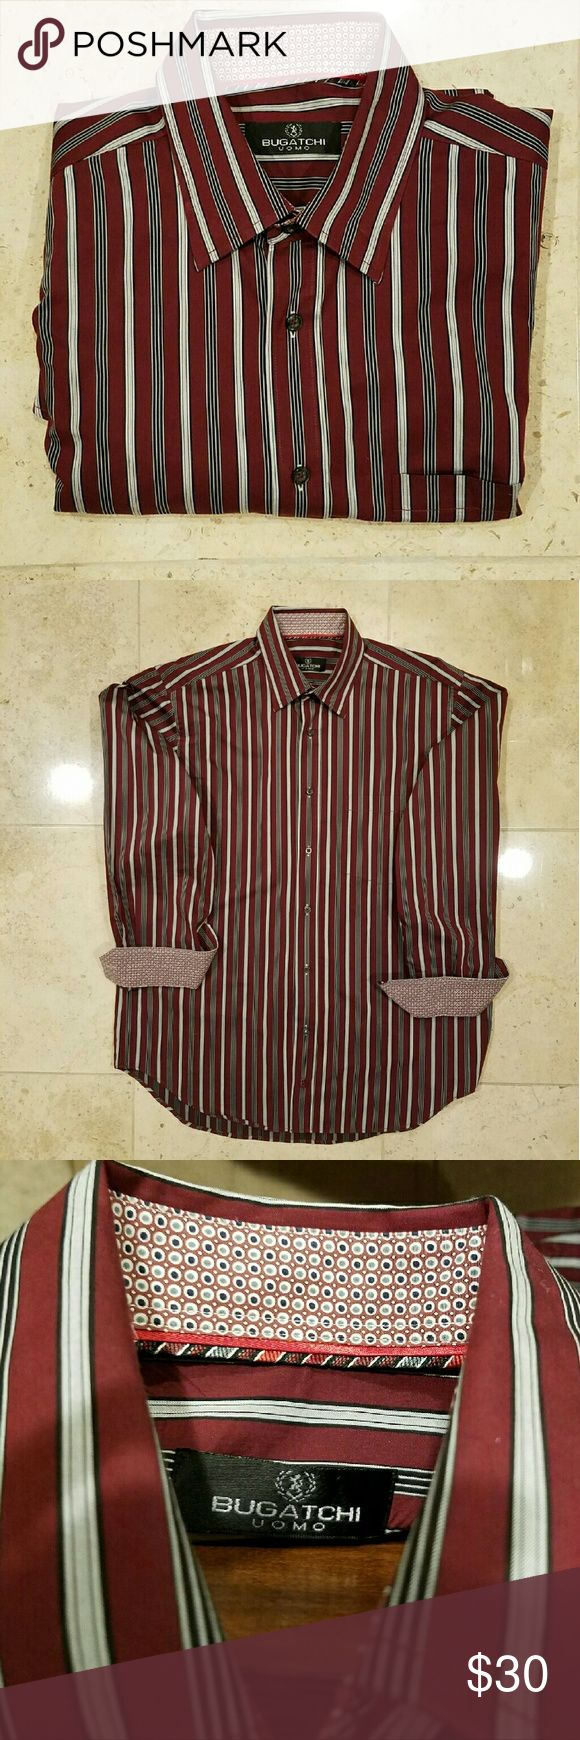 Price drop! Bugatchi Uomo casual striped shirt Bugatchi shirt, maroon with white and dark stripes. Cuffs and collar have contrasting patterns, the Bugatchi trademark. Collar buttons down with buttons hidden underneath. Size L.  100% cotton. No visible wear. EUC. Bugatchi Uomo  Shirts Casual Button Down Shirts